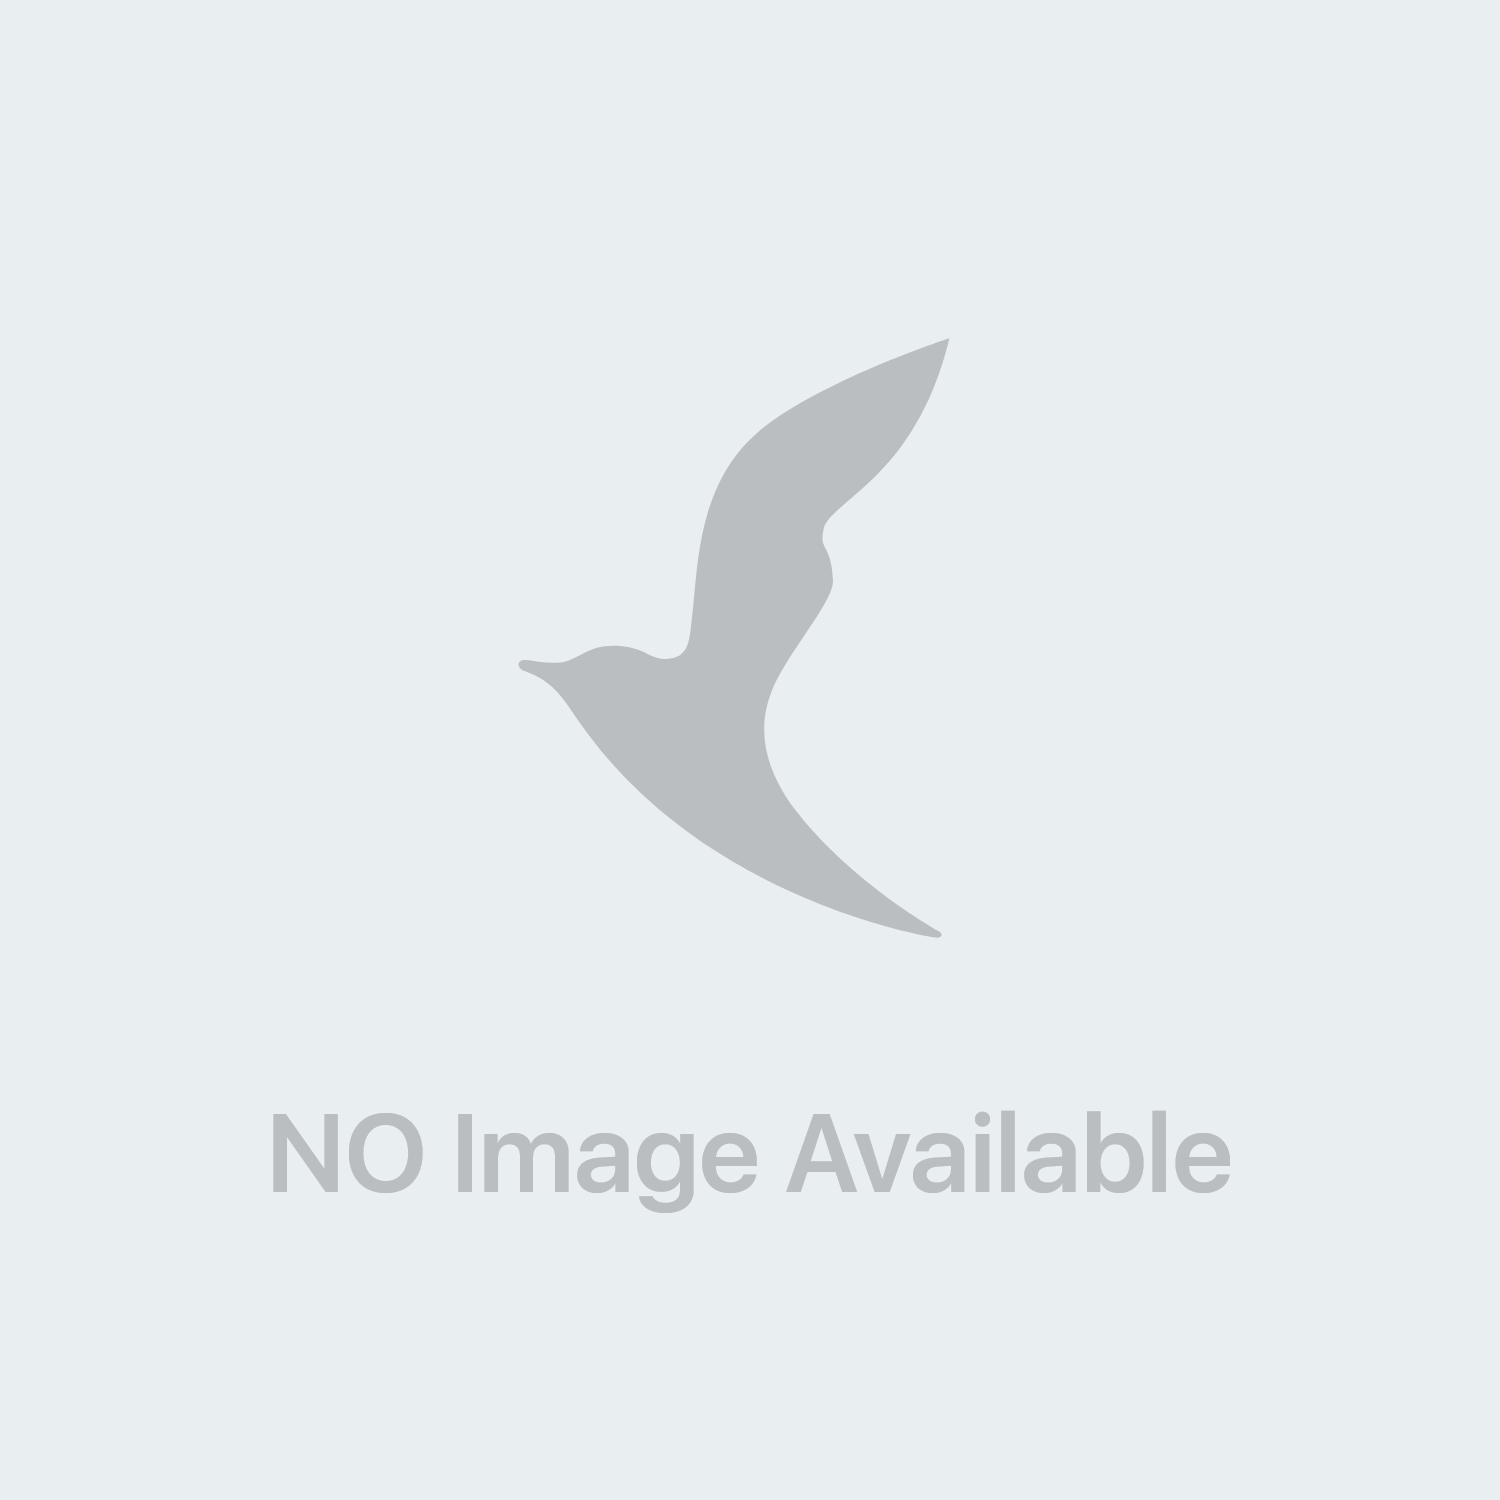 Ketesse 20 Compresse Rivestite 25 mg